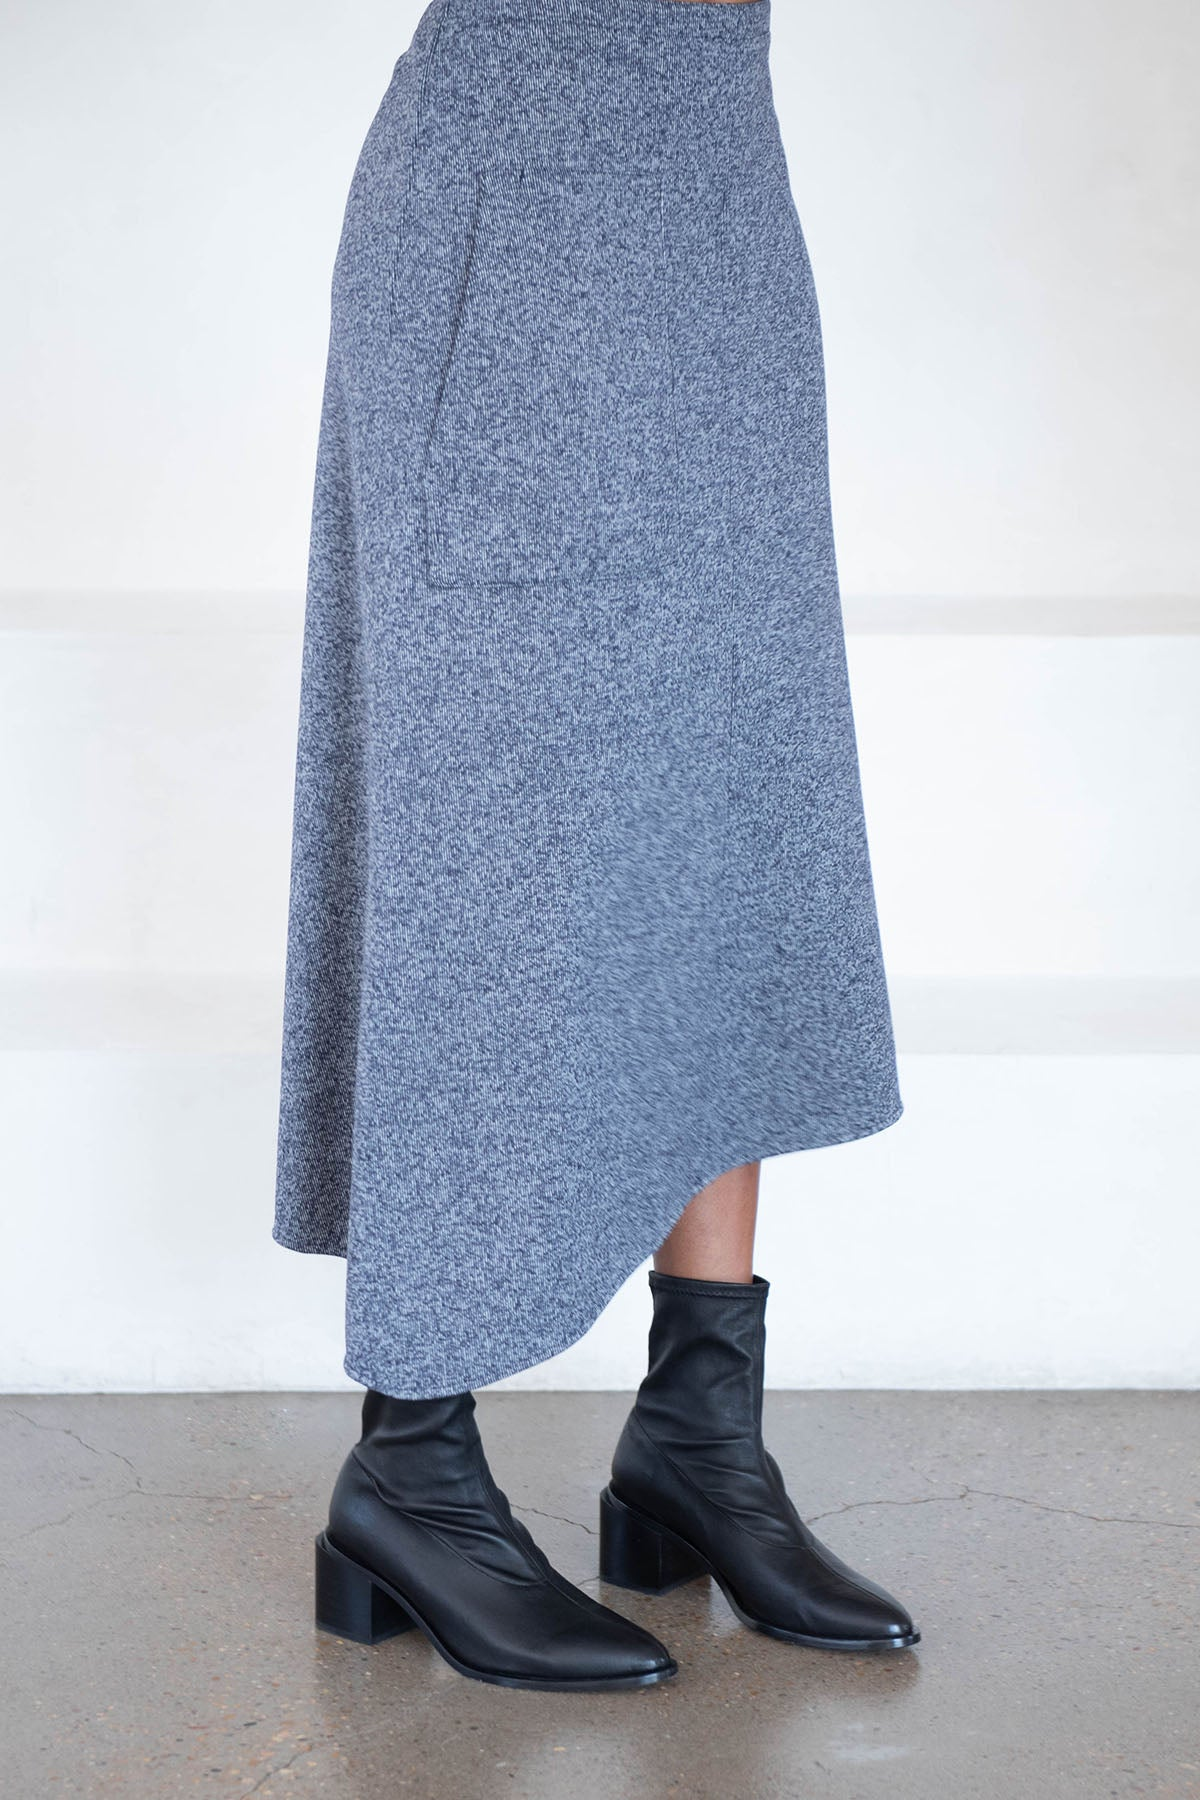 TIBI - origami wrap skirt, navy